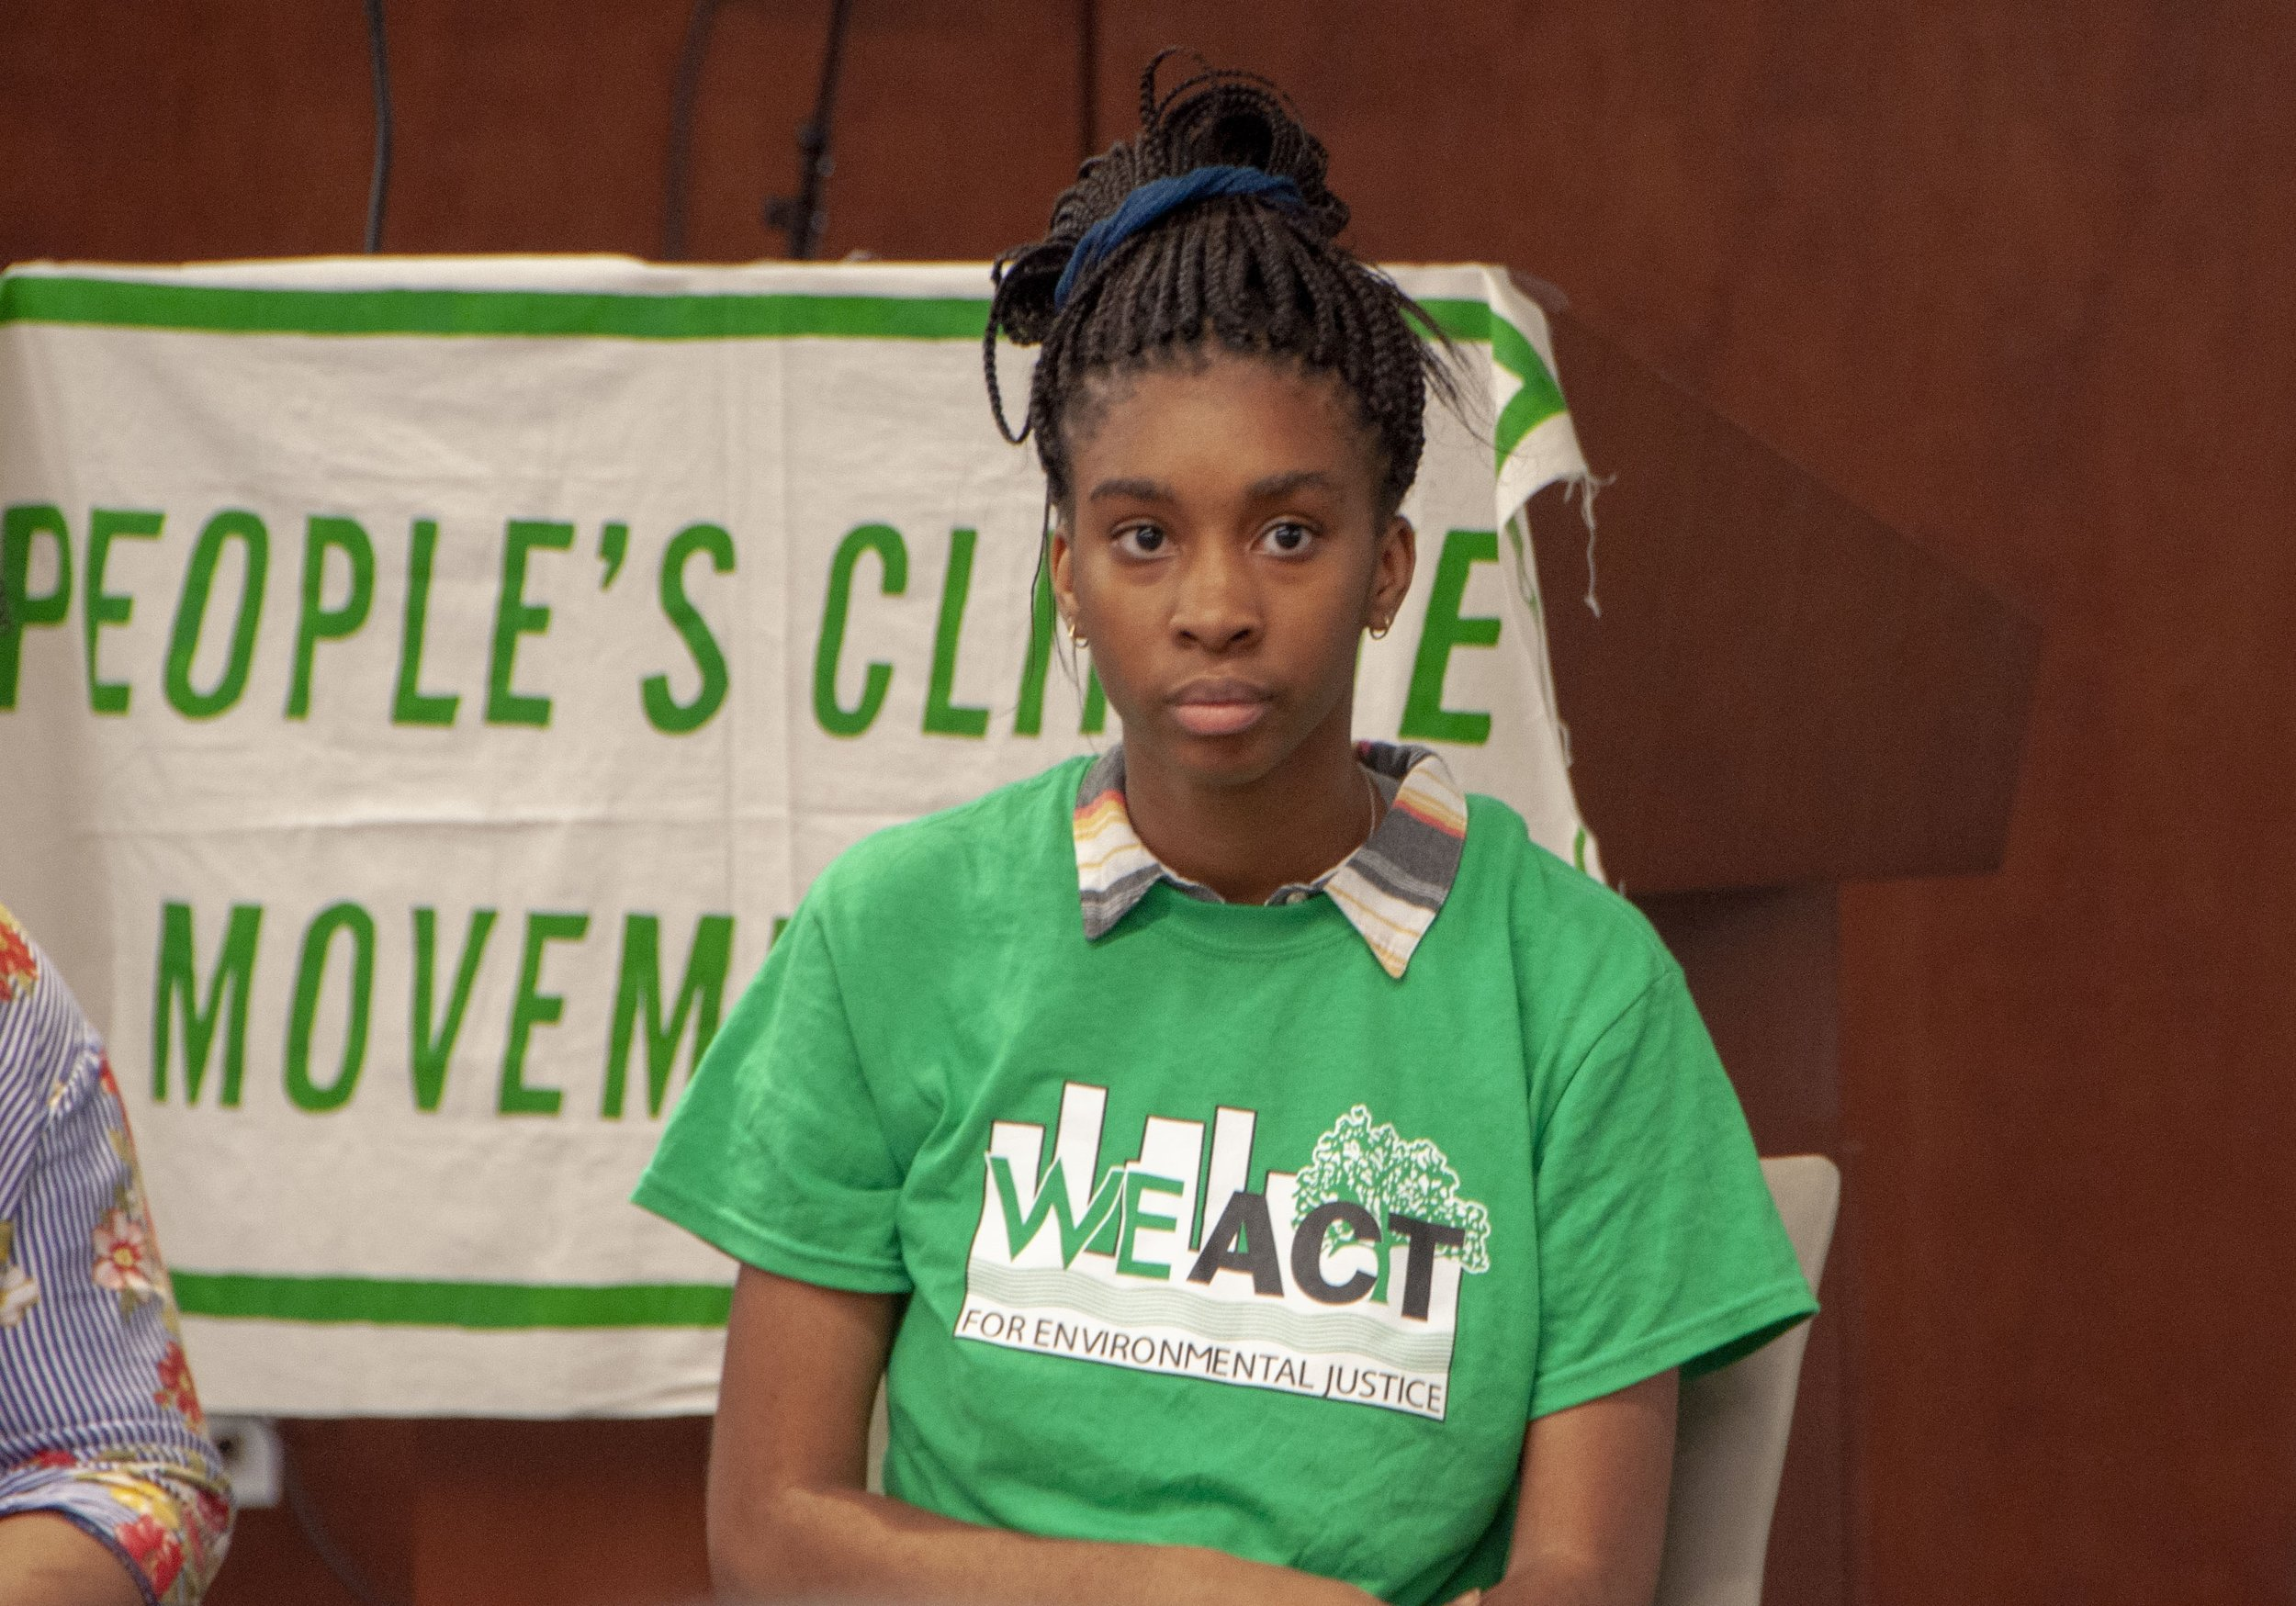 Langa Sibanda is a 17 year-old high school student from Harlem who is serving as an intern for WE ACT for Environmental Justice, a community-based nonprofit dedicated to ensuring that people of color and/or low-income participate meaningfully in the creation of sound and fair environmental health and protection policies and practices. These are the remarks she shared with the more than 100 people attending the first #RiseNY citywide planning meeting on July 23, 2018.